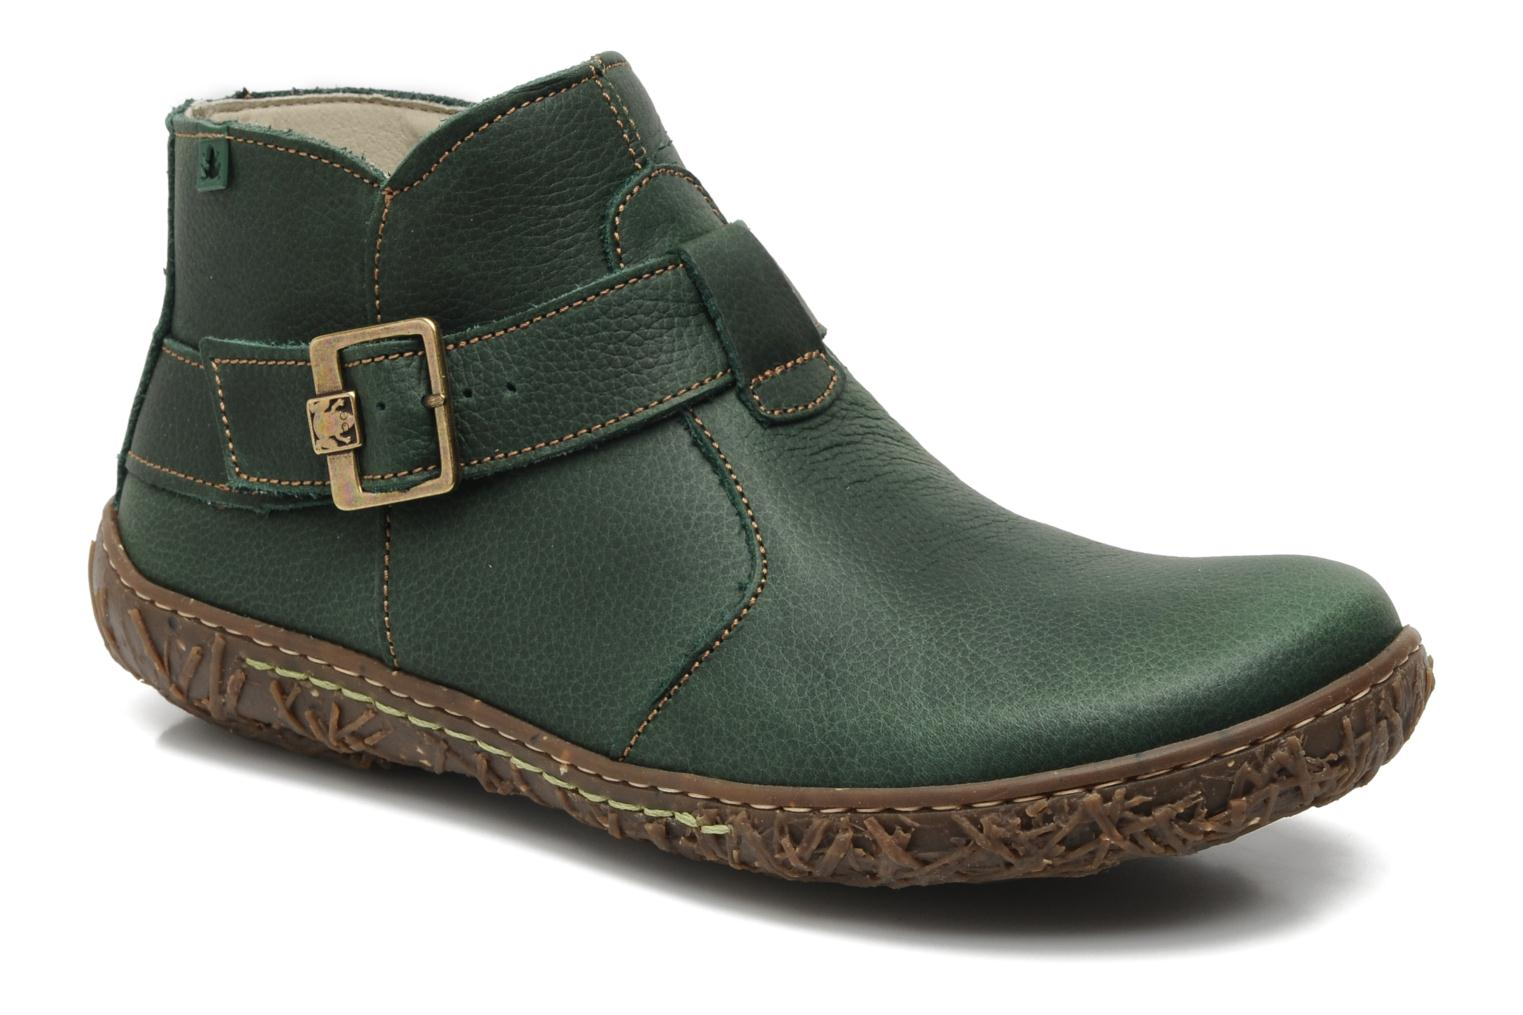 el naturalista nido ella n734 ankle boots in green at 139735. Black Bedroom Furniture Sets. Home Design Ideas